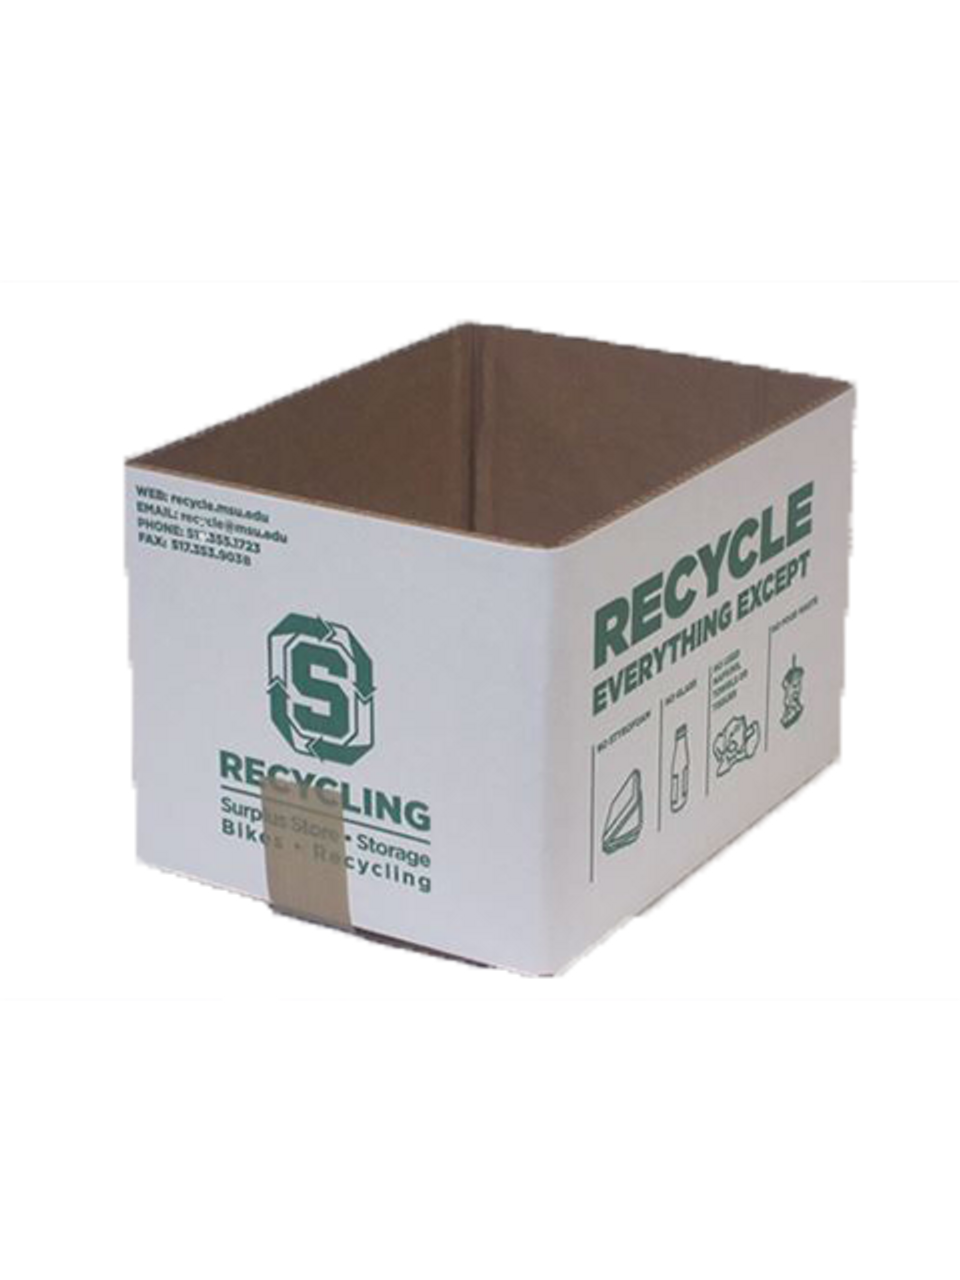 Office Paper At-Desk Recycling Container